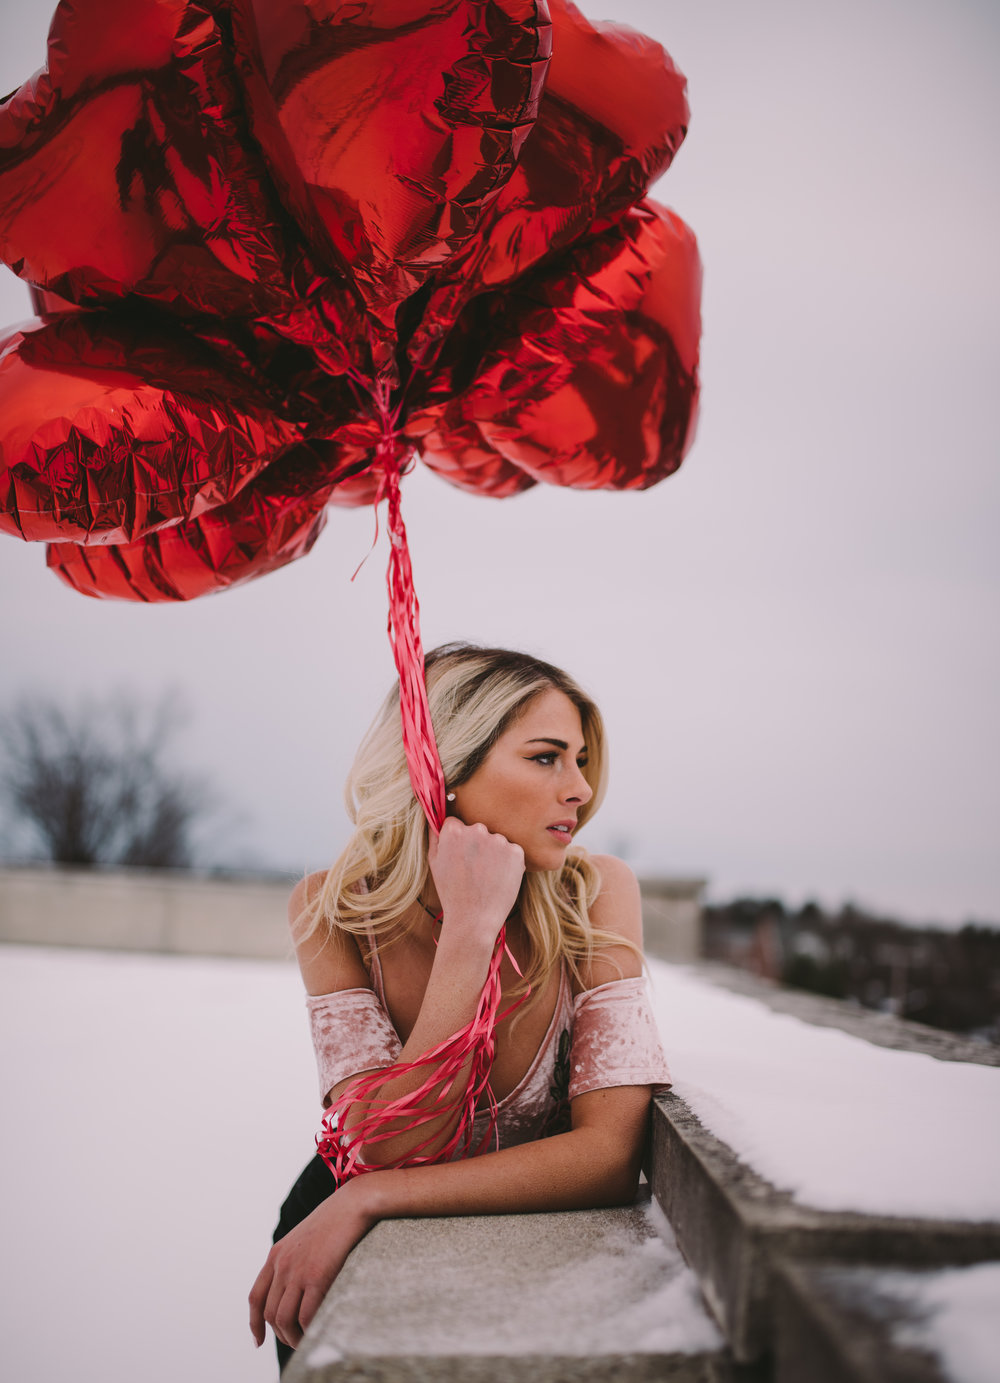 MakindsayCarper_Valentine'sDaySession_BallState_February2018_Senior Photography In Tempe_ArizonaSeniorPhotographer_SamanthaRosePhotography_final_-7.jpg